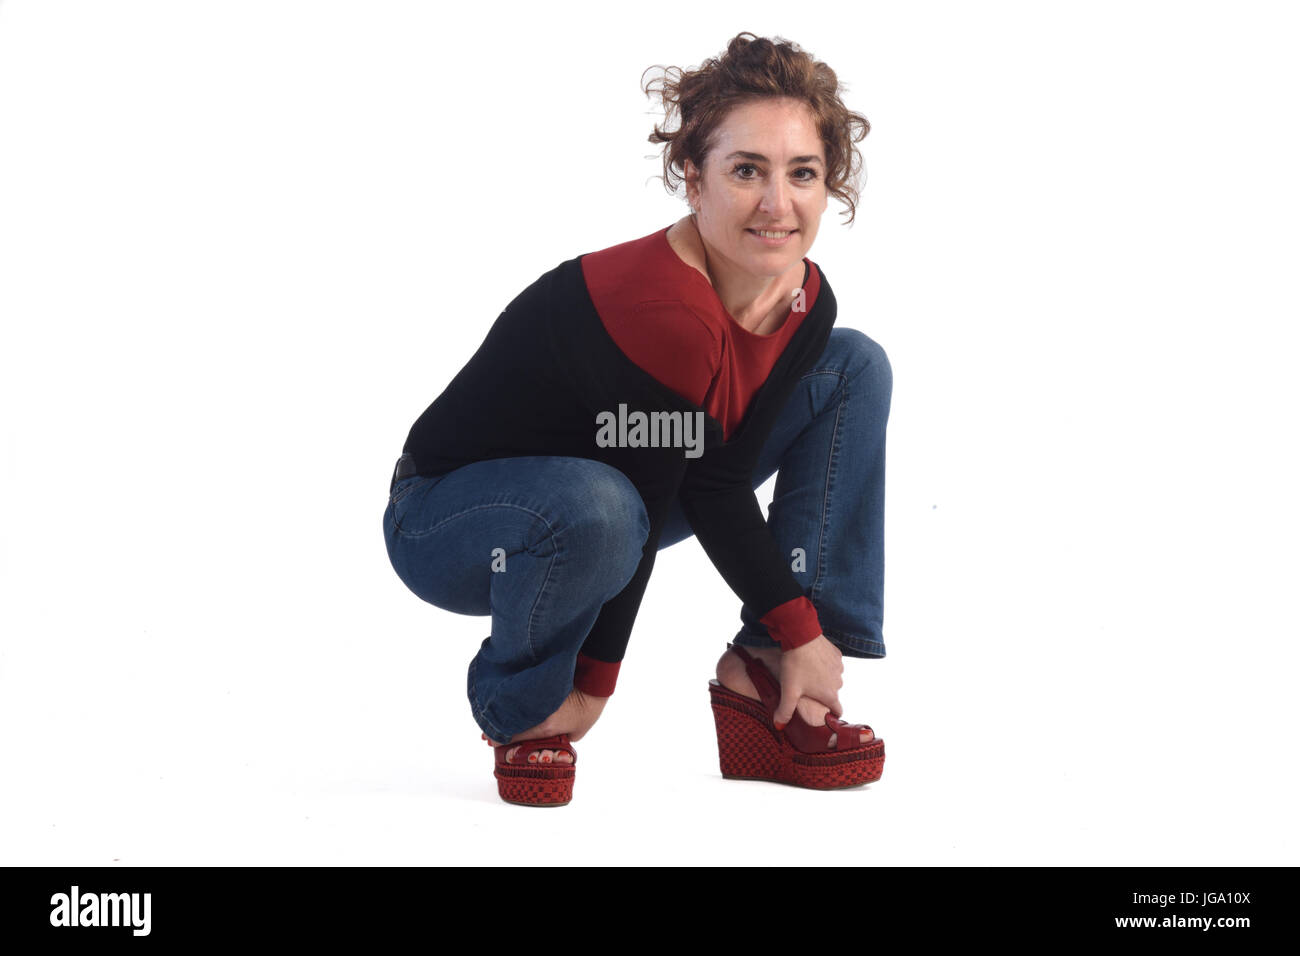 Woman crouching on a white background - Stock Image